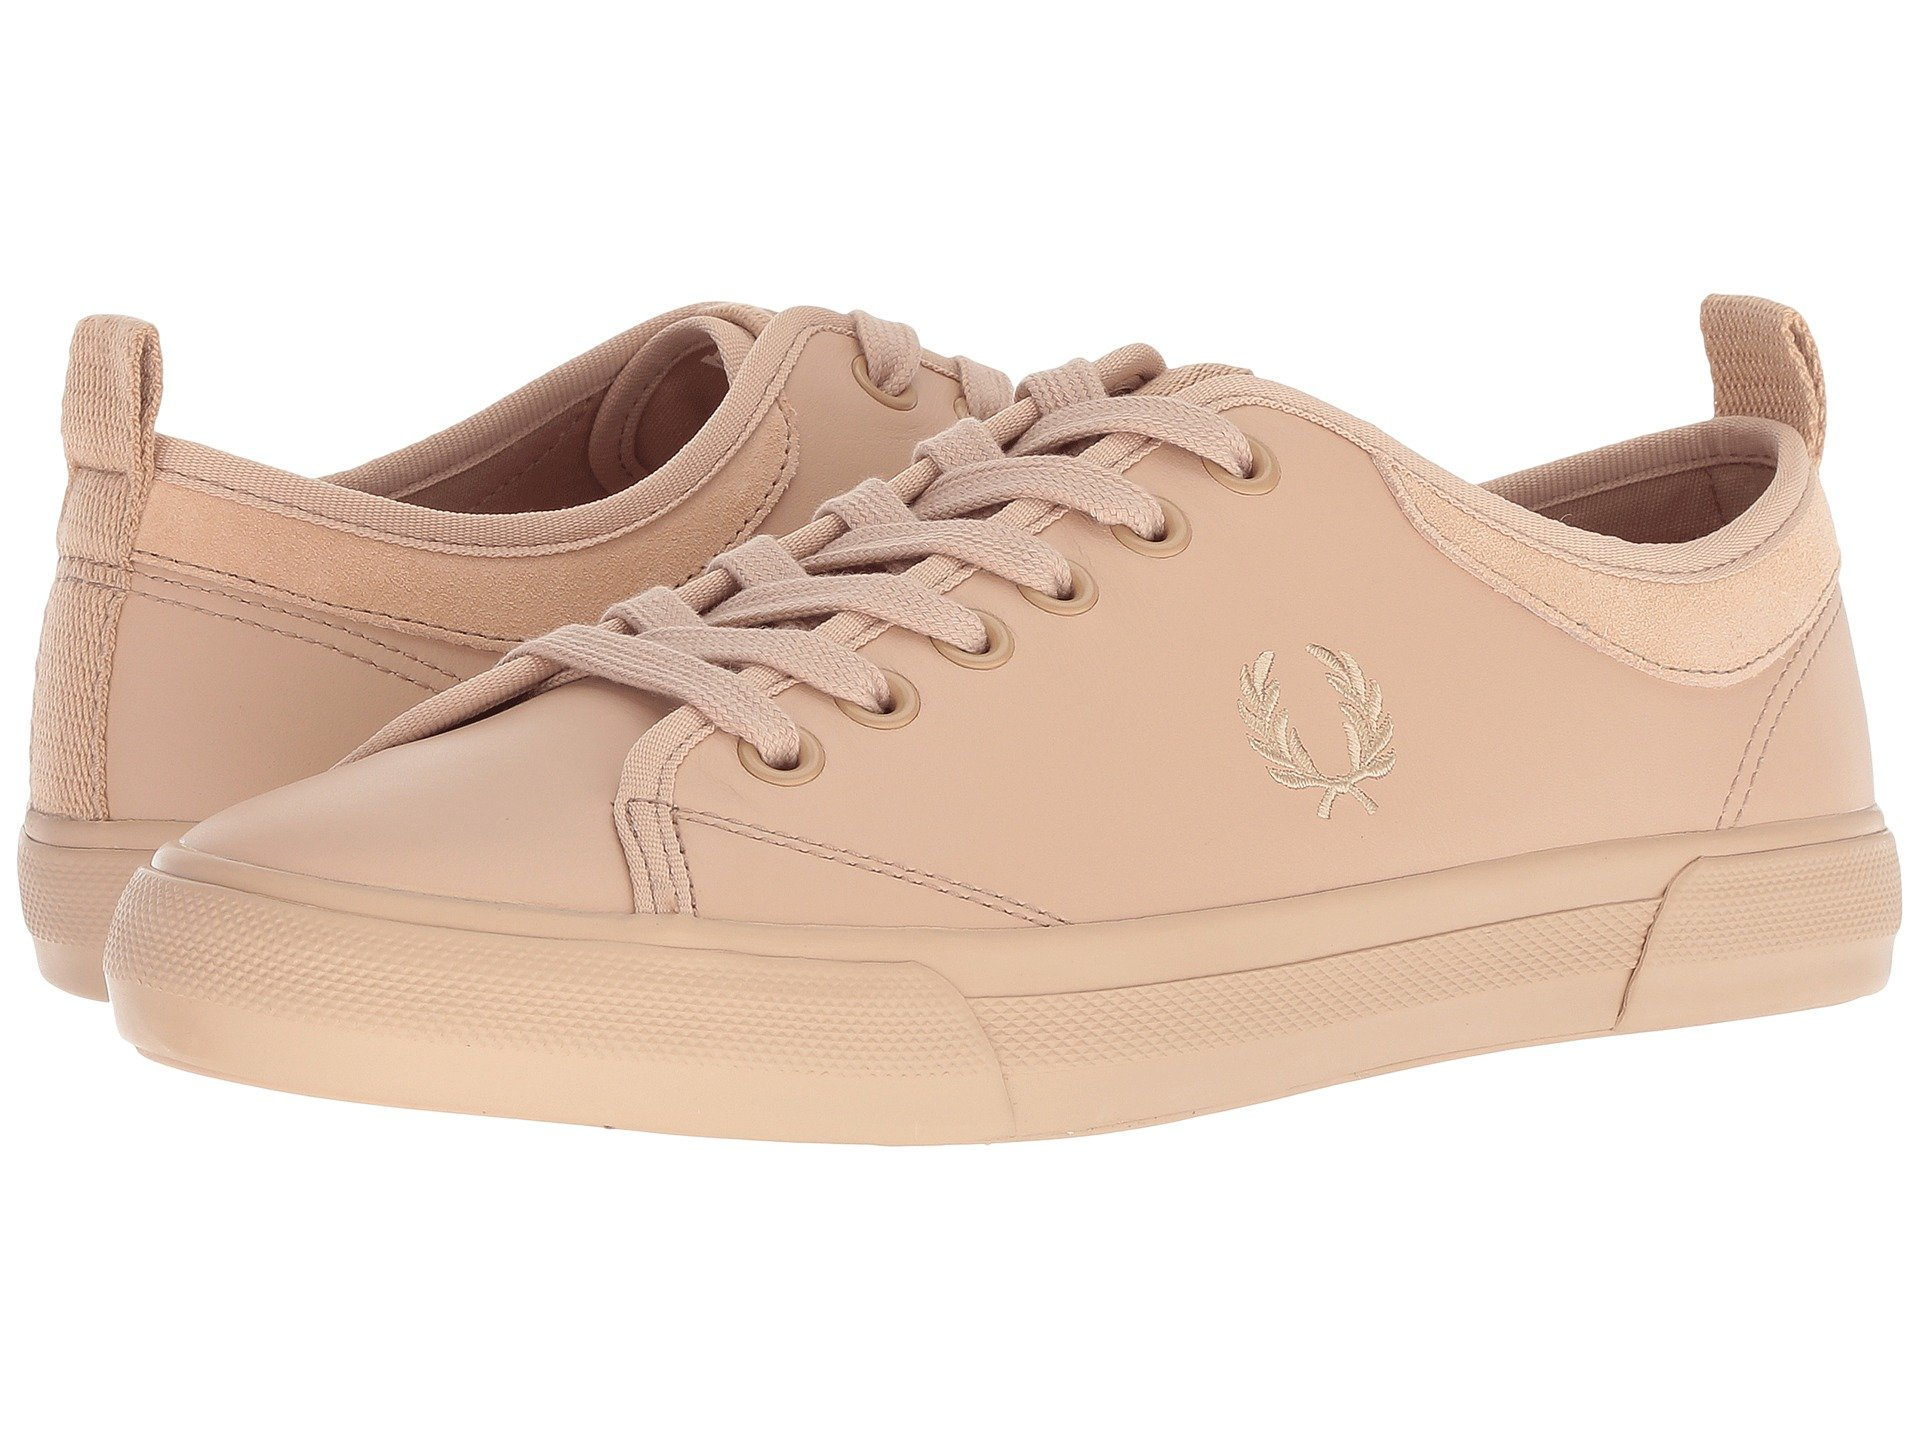 Horton Natural Leather suede Fred Perry Tan 8nUFqn1z